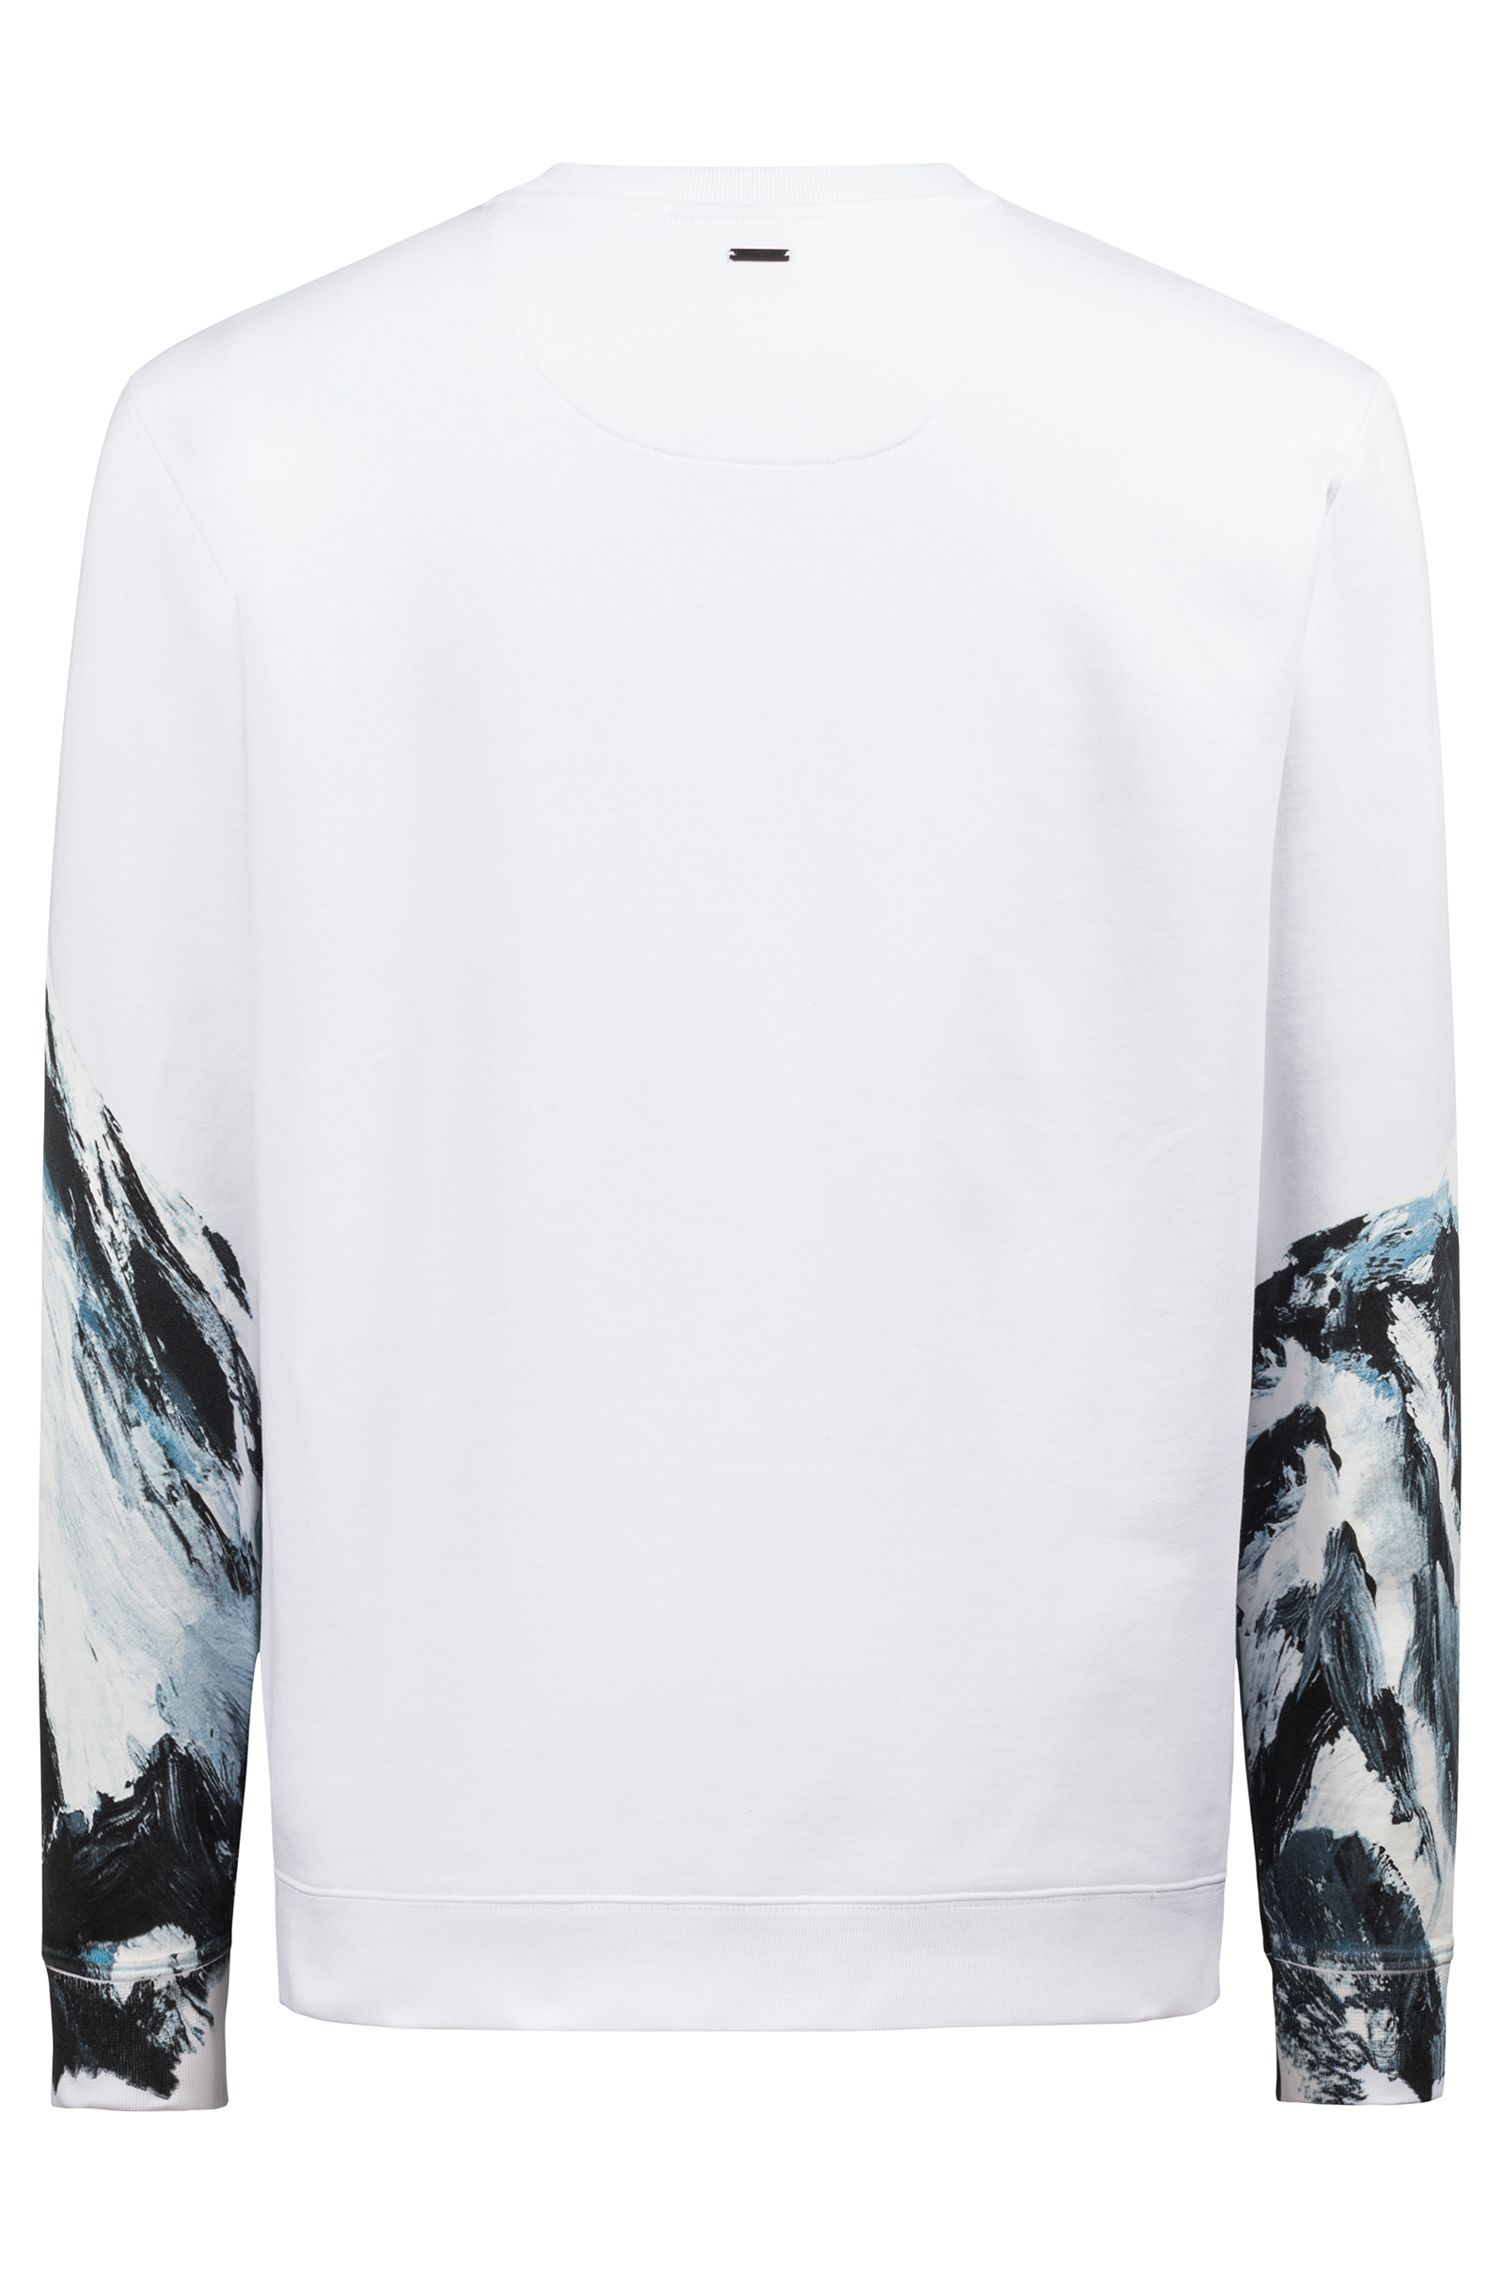 Sweat Oversized Fit en coton à motif montagne graphique de saison, Fantaisie